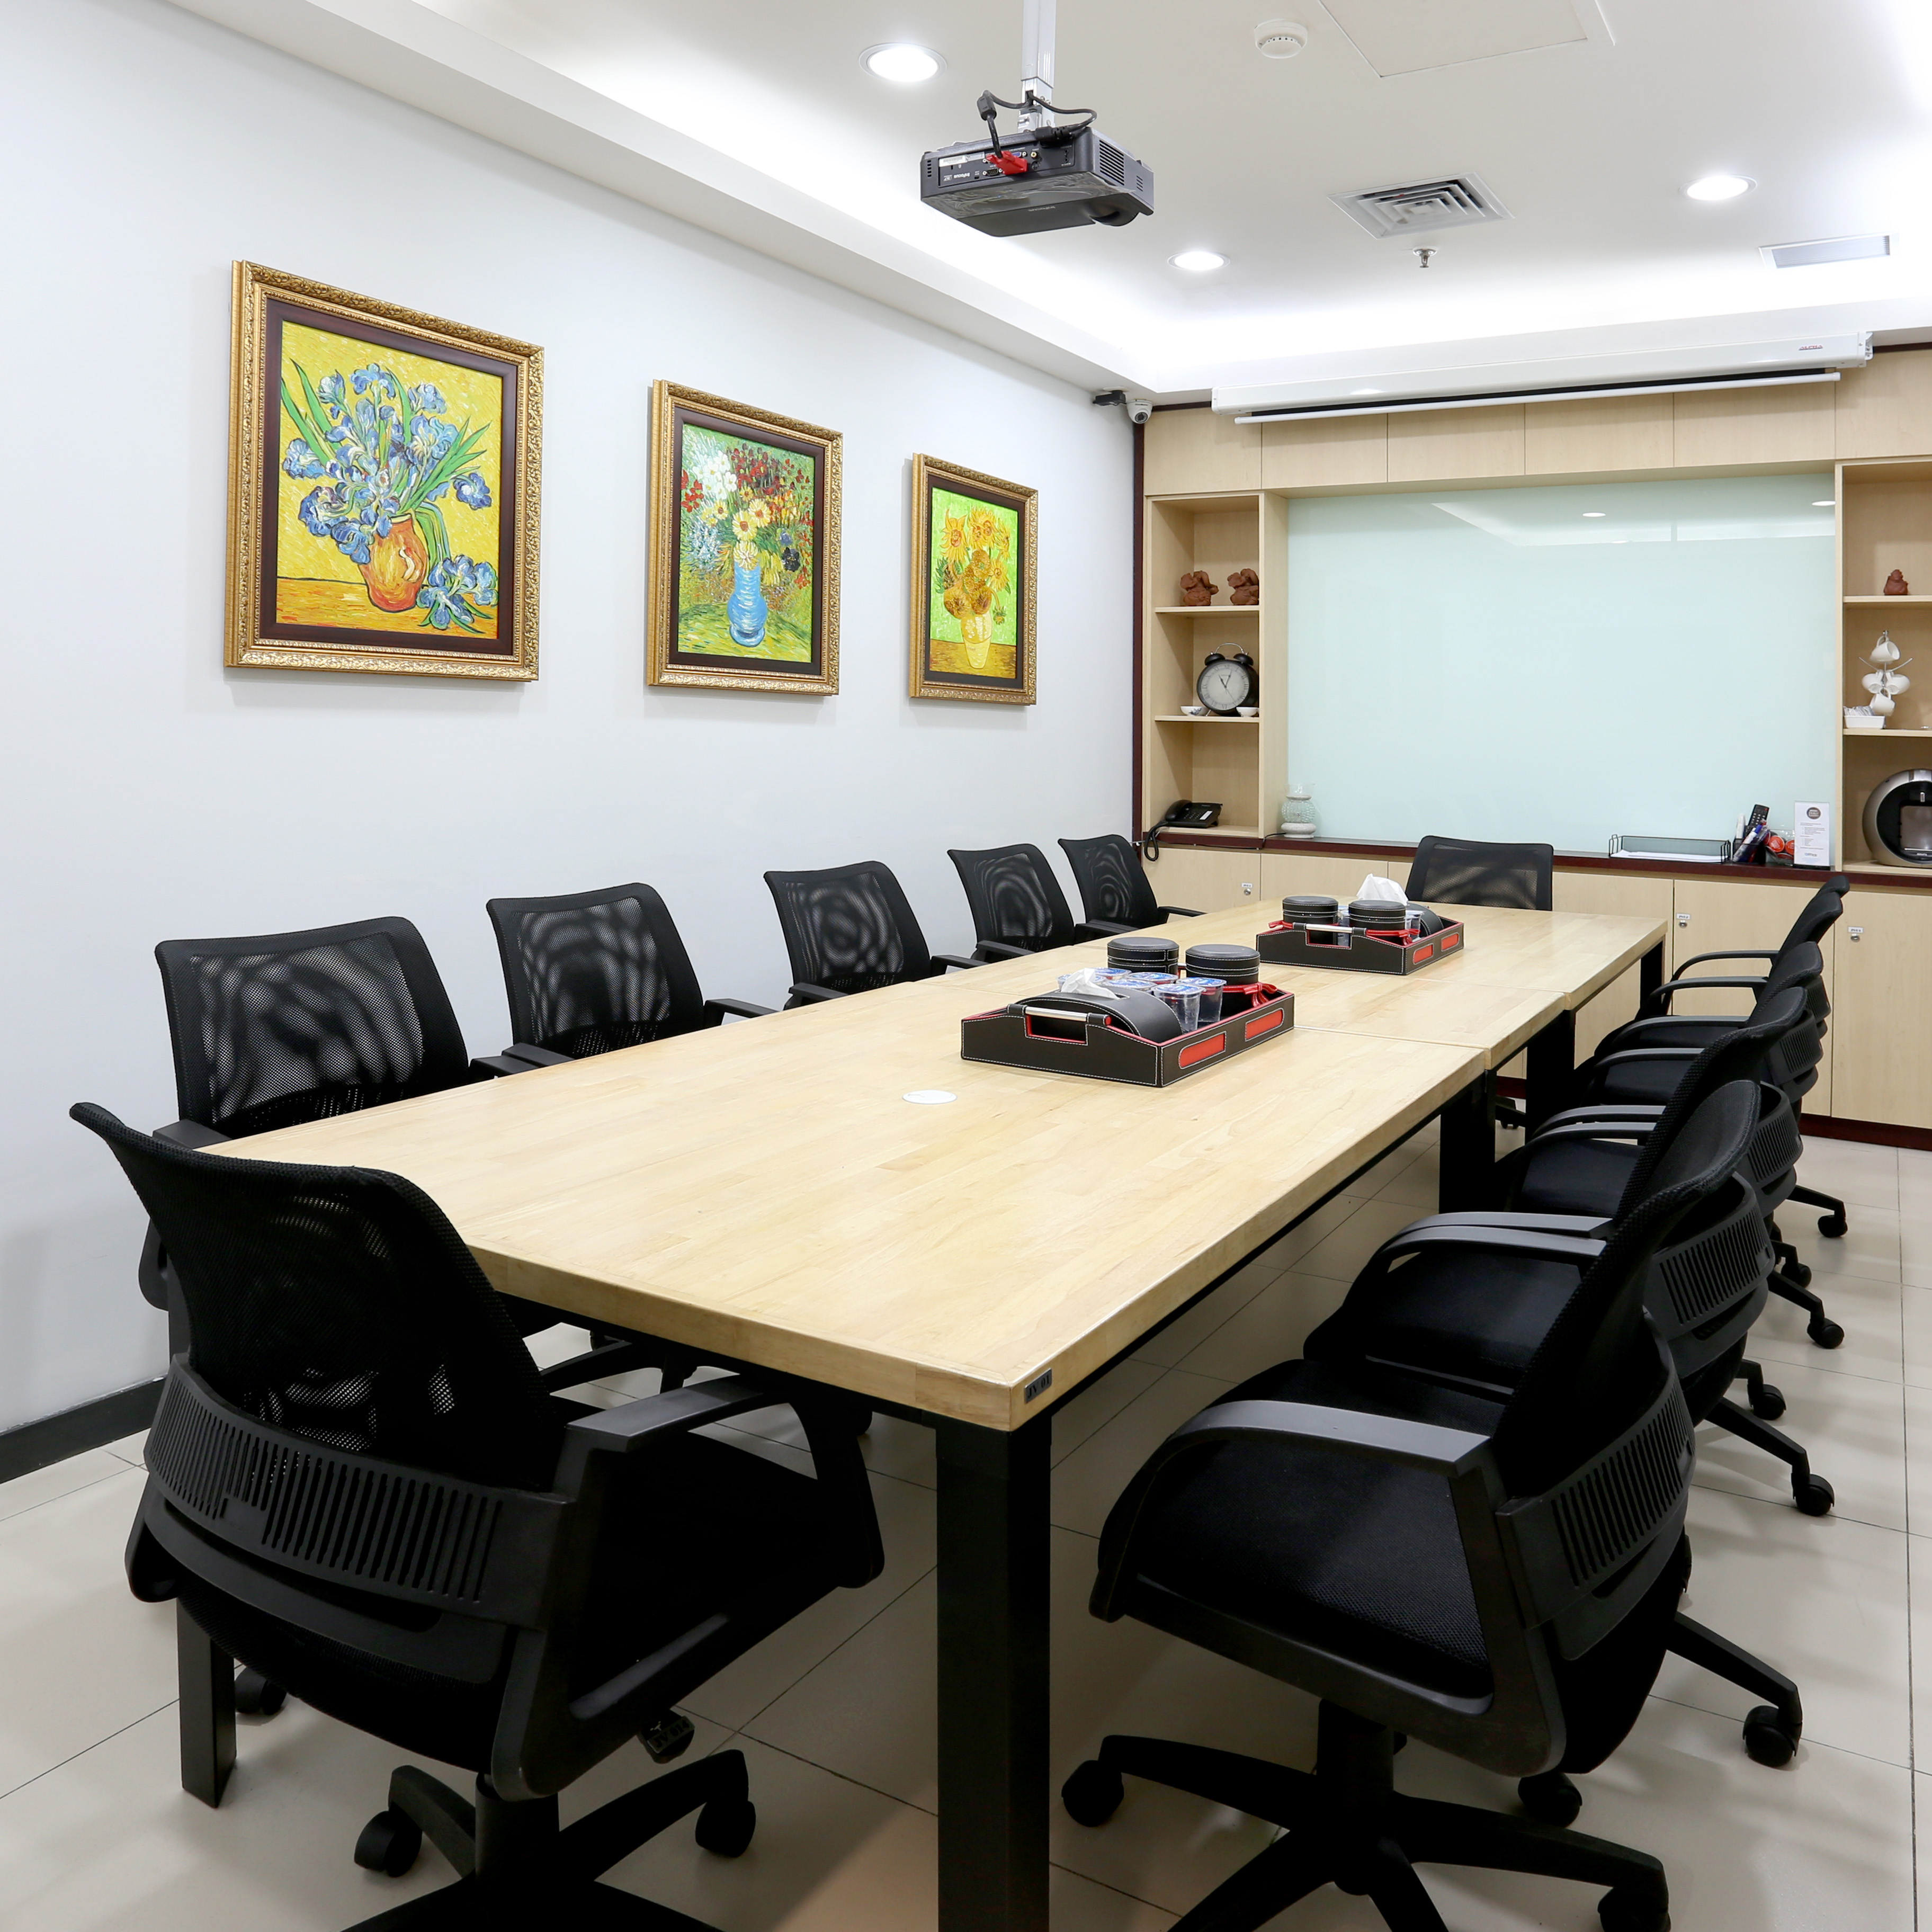 Things to Look For When Ordering a Meeting Room at 88Office